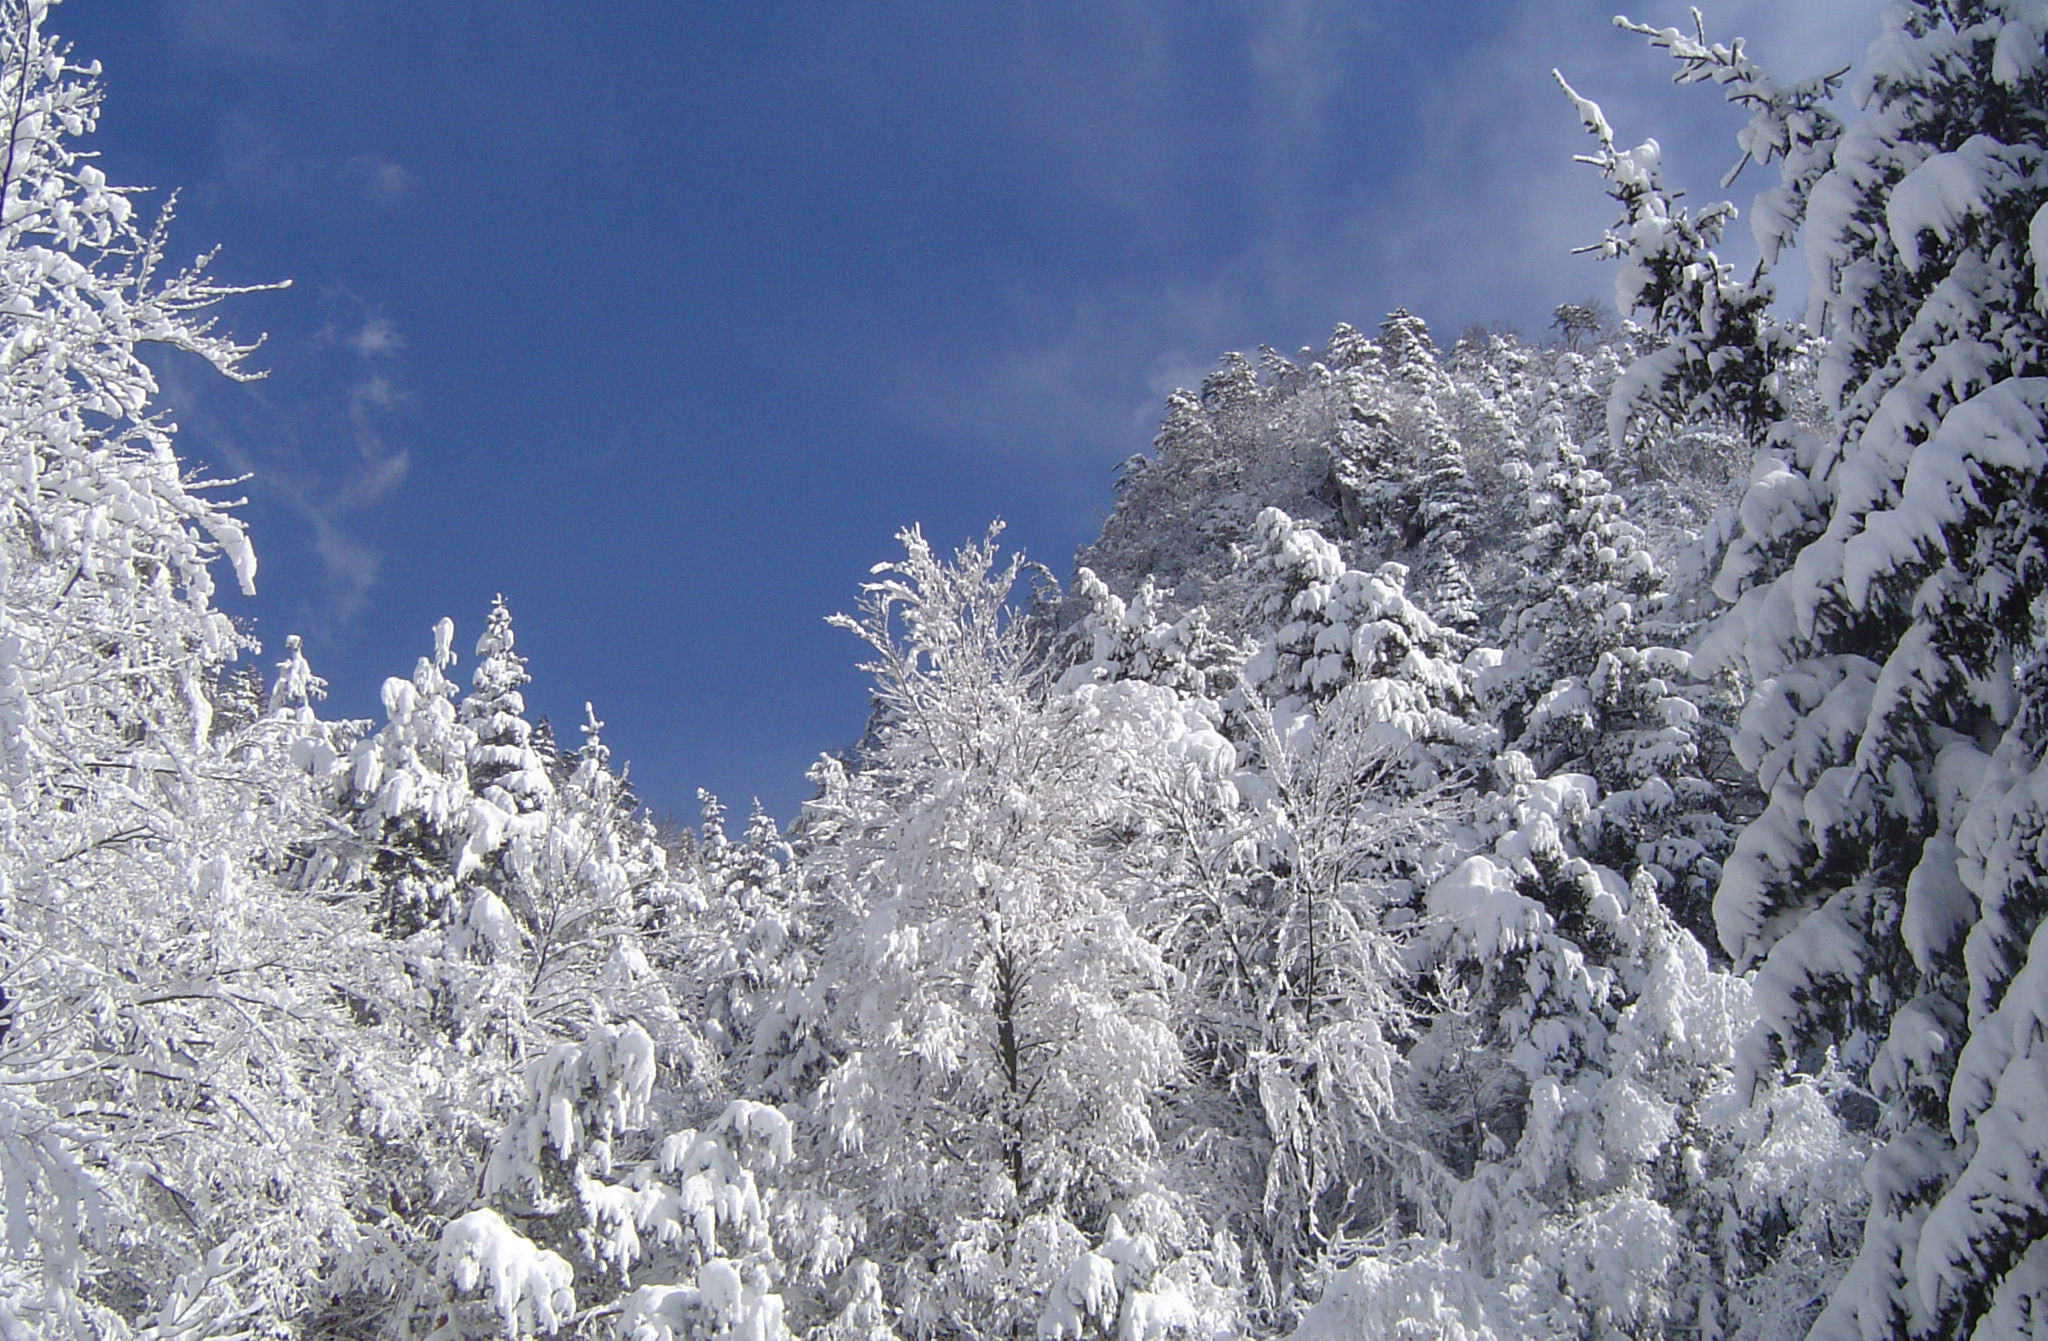 Slovenian Alps are white in winter with plenty of snow